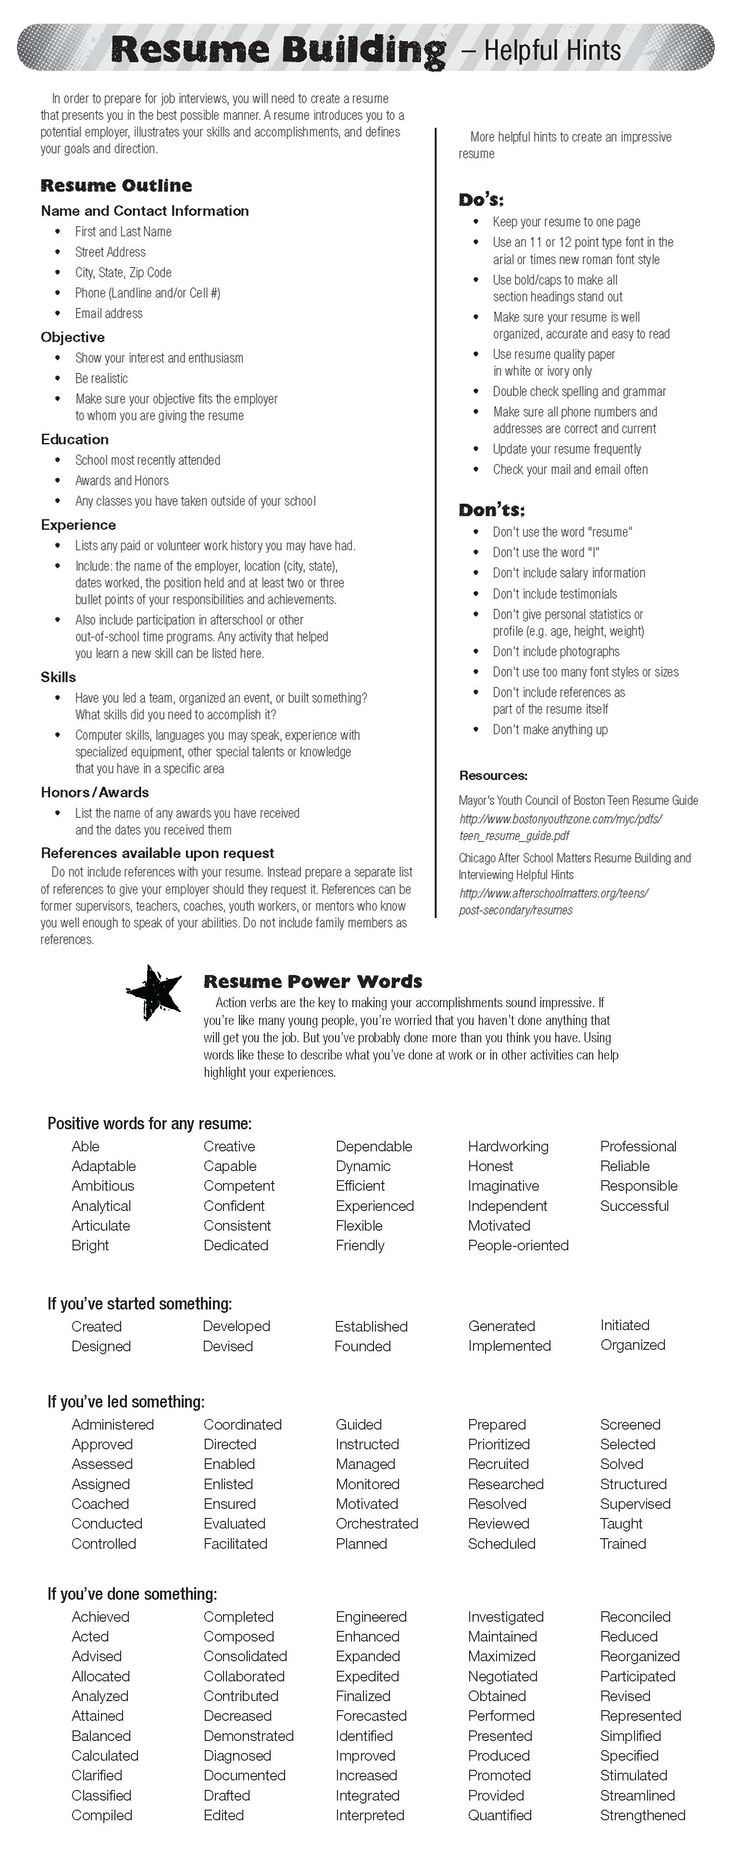 Opposenewapstandardsus  Fascinating  Ideas About Resume On Pinterest  Cv Format Resume Cv And  With Likable  Ideas About Resume On Pinterest  Cv Format Resume Cv And Resume Templates With Appealing Words To Use For Resume Also Teacher Responsibilities Resume In Addition Online Resume Writing Services And Resume For Undergraduate As Well As Best Online Resume Service Additionally Resume Writing Skills From Pinterestcom With Opposenewapstandardsus  Likable  Ideas About Resume On Pinterest  Cv Format Resume Cv And  With Appealing  Ideas About Resume On Pinterest  Cv Format Resume Cv And Resume Templates And Fascinating Words To Use For Resume Also Teacher Responsibilities Resume In Addition Online Resume Writing Services From Pinterestcom